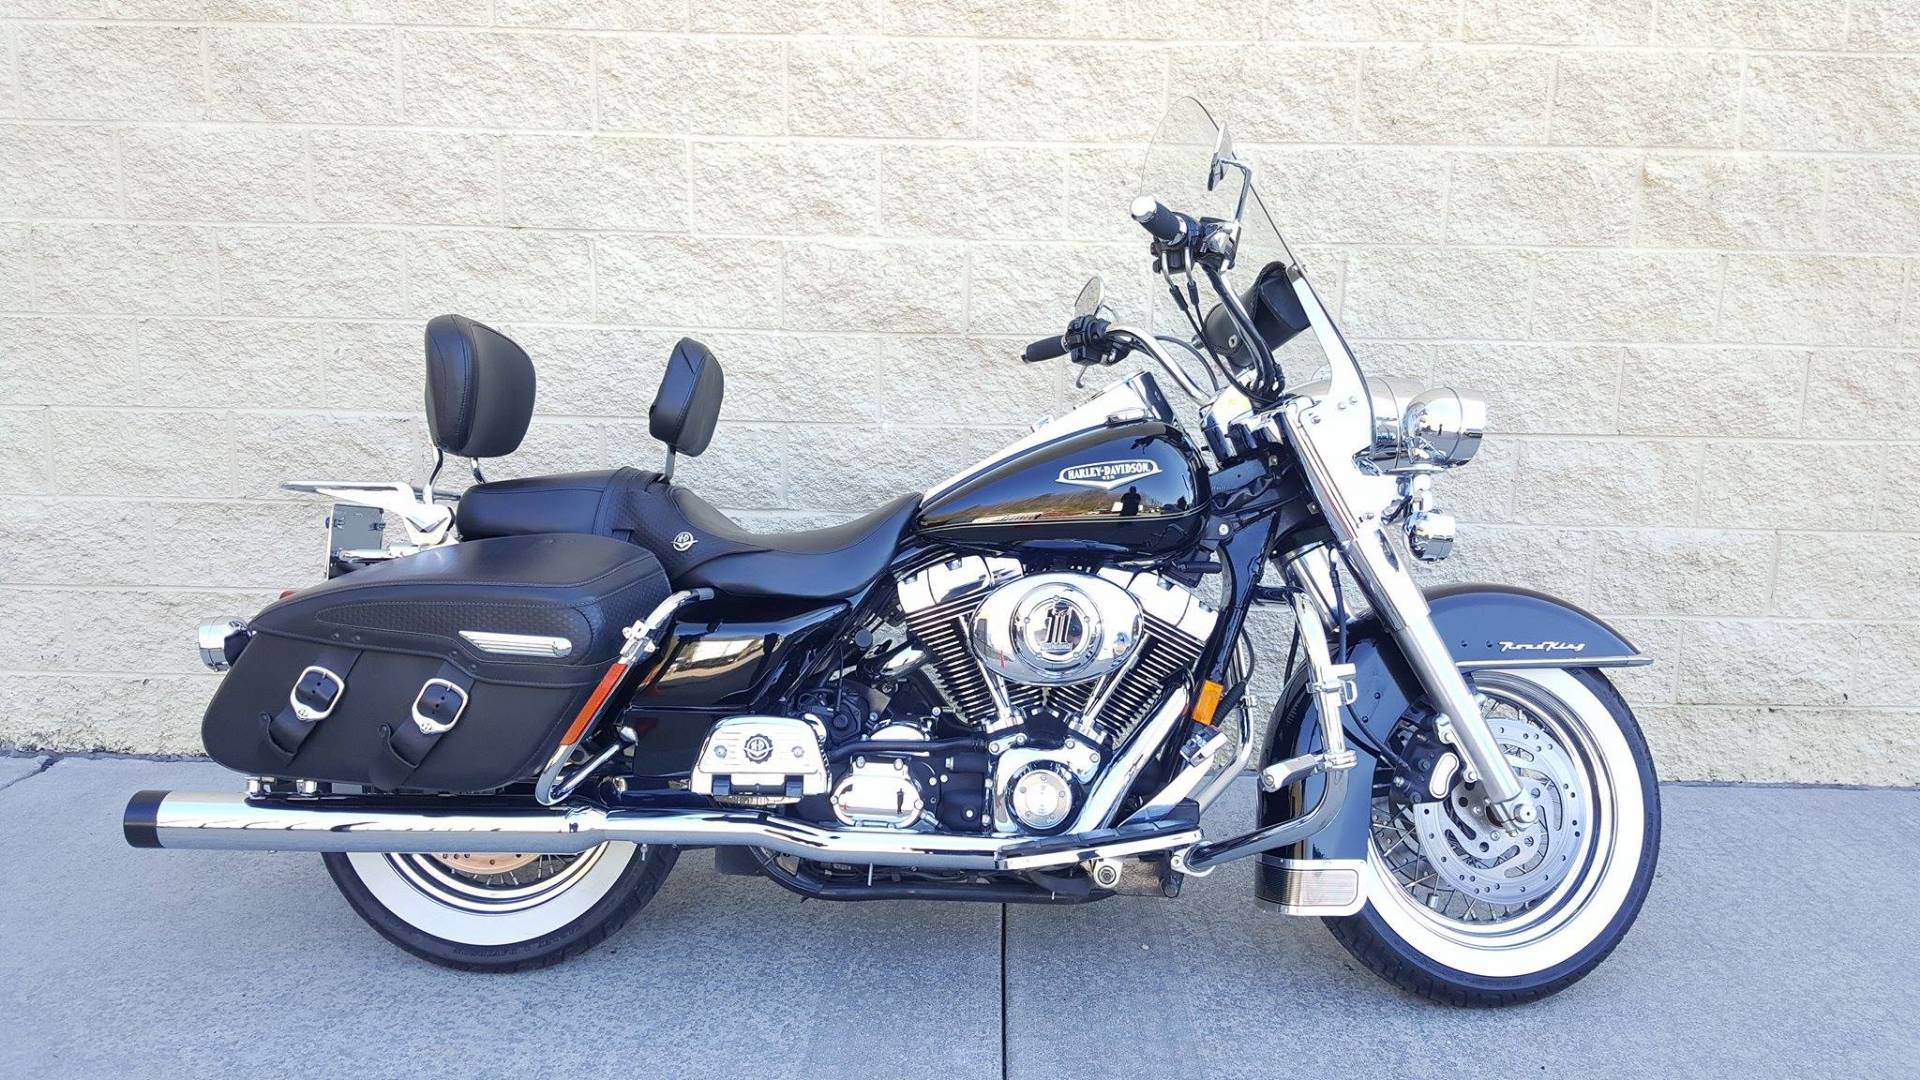 2004 Harley-Davidson FLHRCI Road King Classic